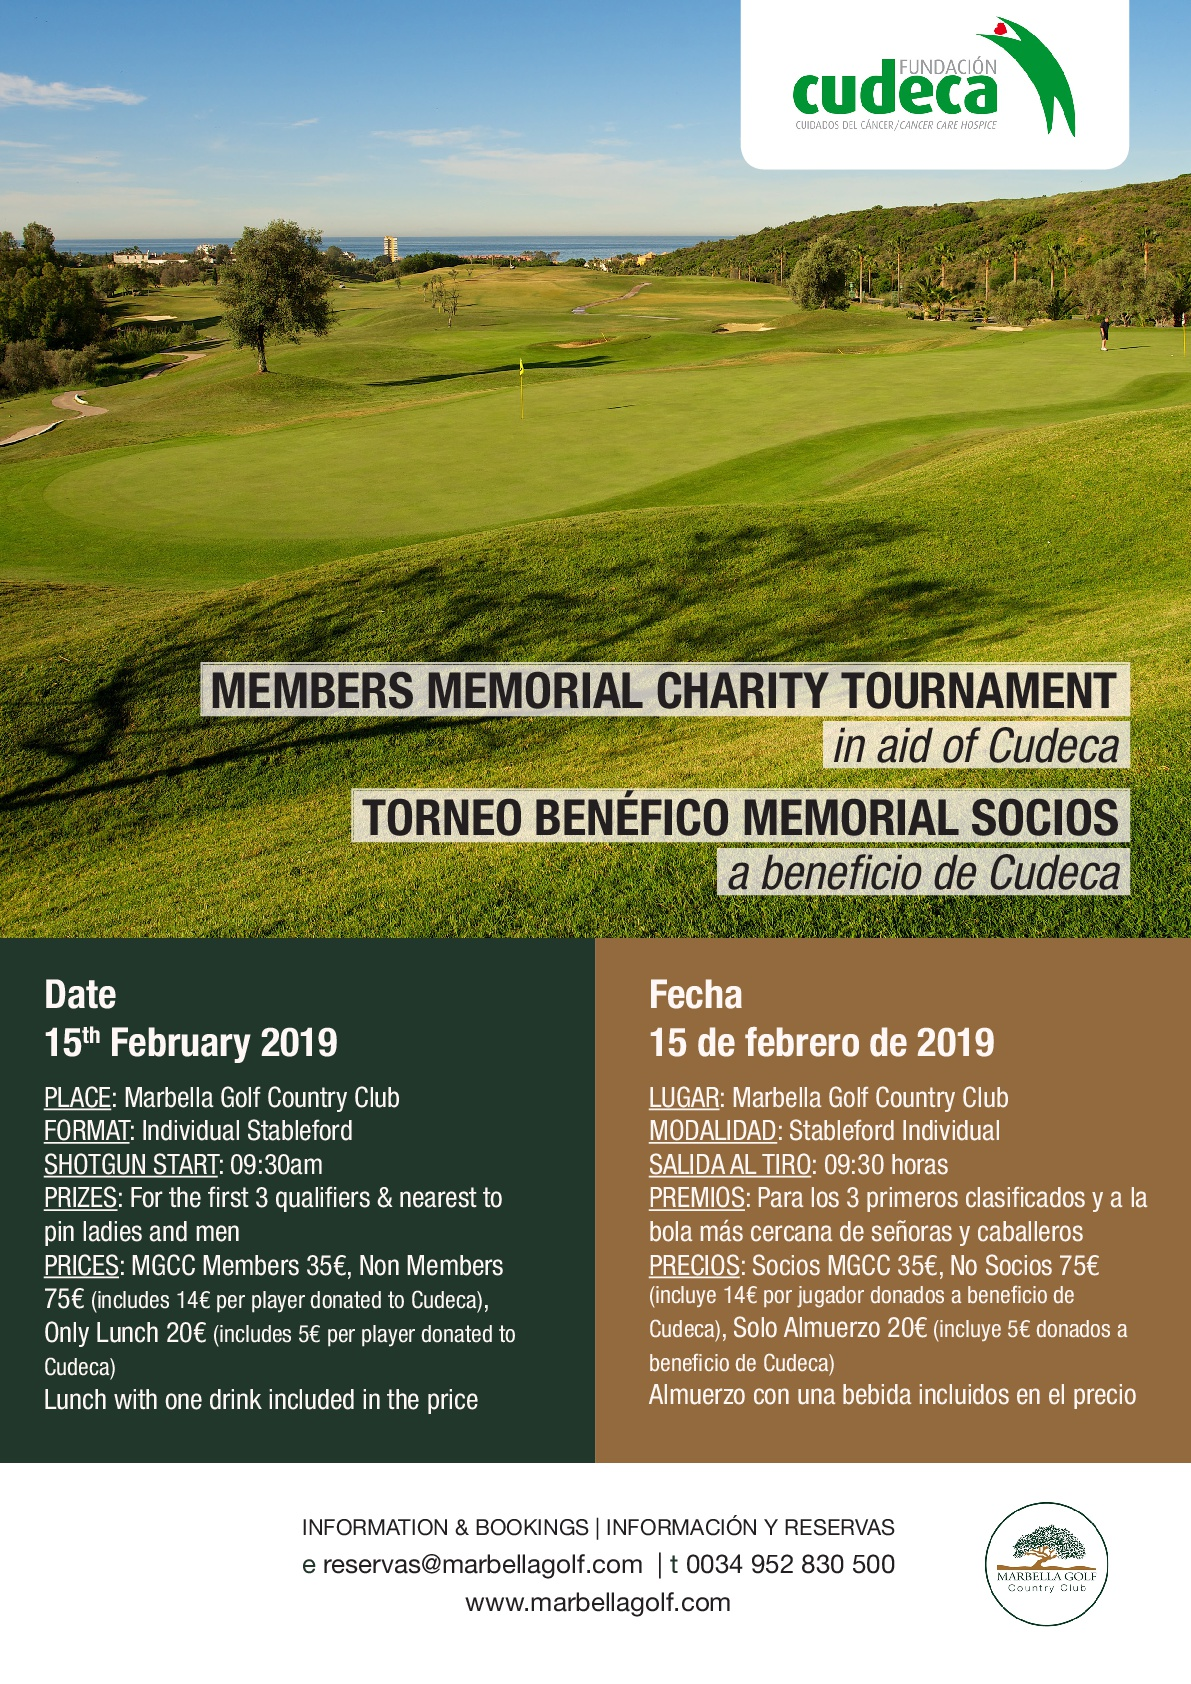 Memorial Members Charity Tournament at Marbella Golf & Country Club for CUDECA!